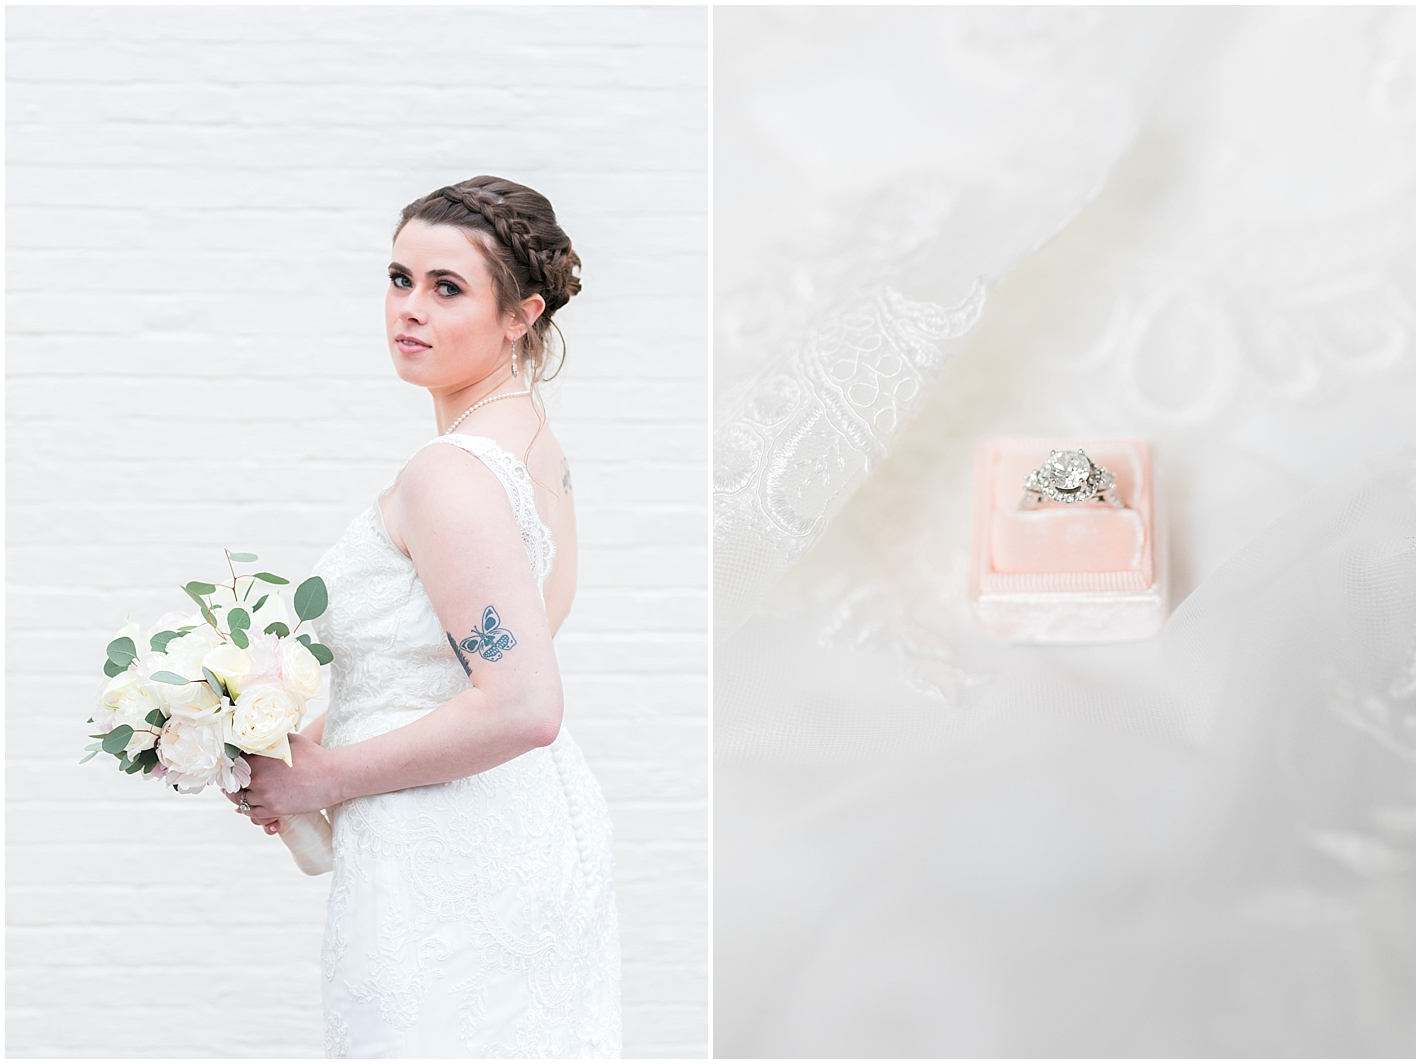 White and White Bridal Bouquet Photos By Alyssa Parker Photography